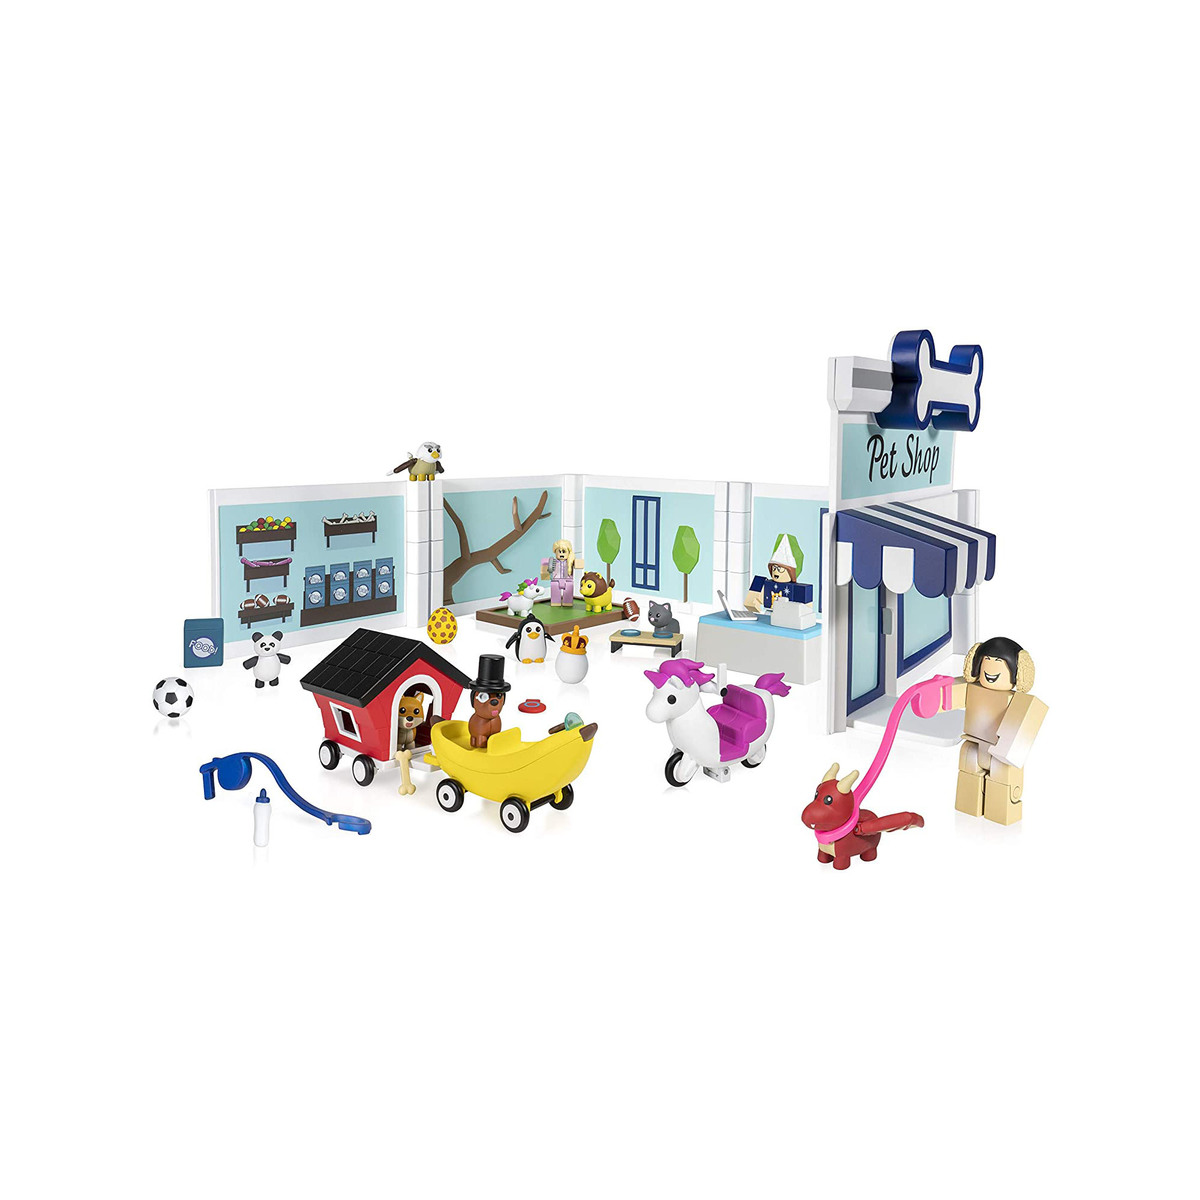 Roblox Adopt Me Deluxe Pet Store Playset The Entertainer